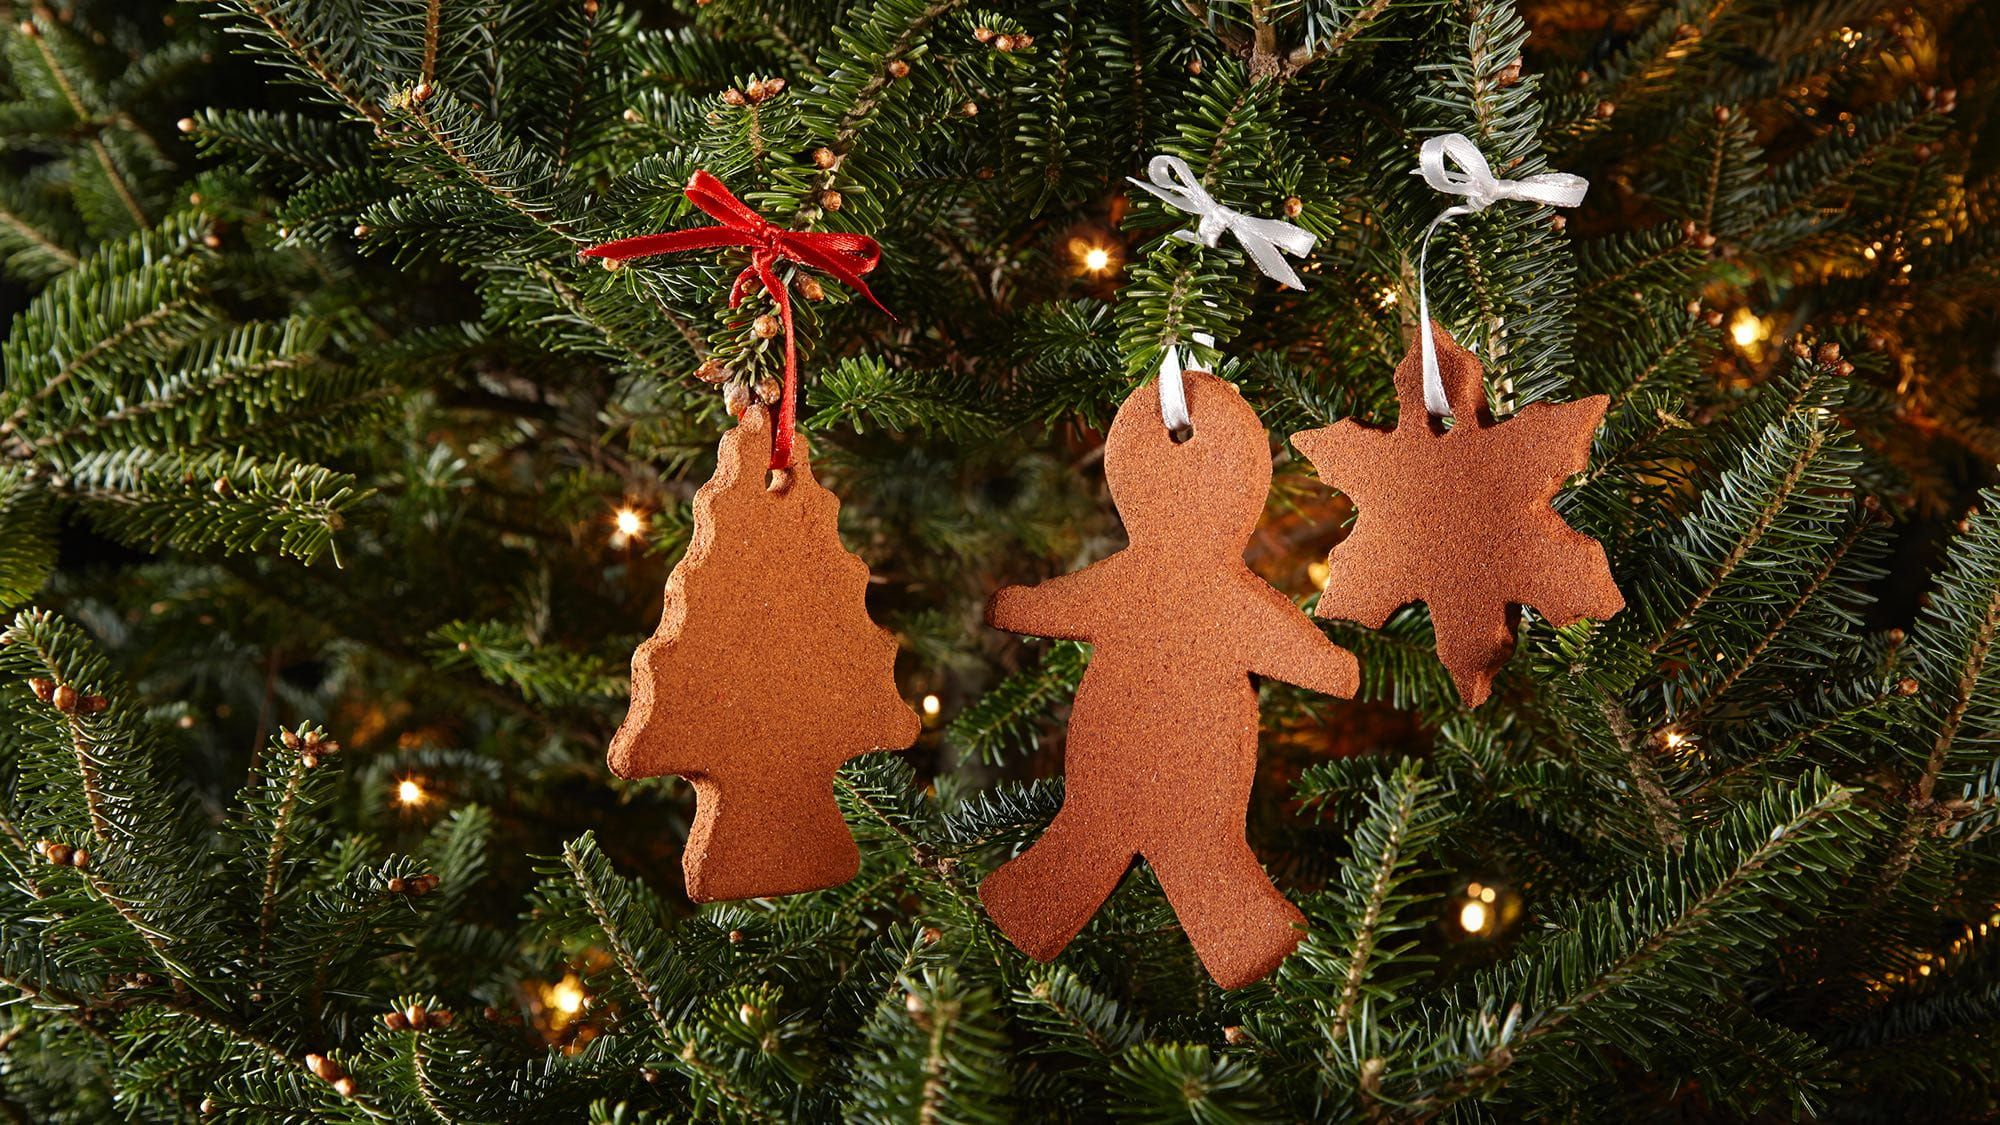 Cinnamon Ornaments Making Cinnamon Ornaments Are A Perfect Holiday Fun Activity For Kids The O Cinnamon Applesauce Ornaments Food Ornaments Cinnamon Ornaments